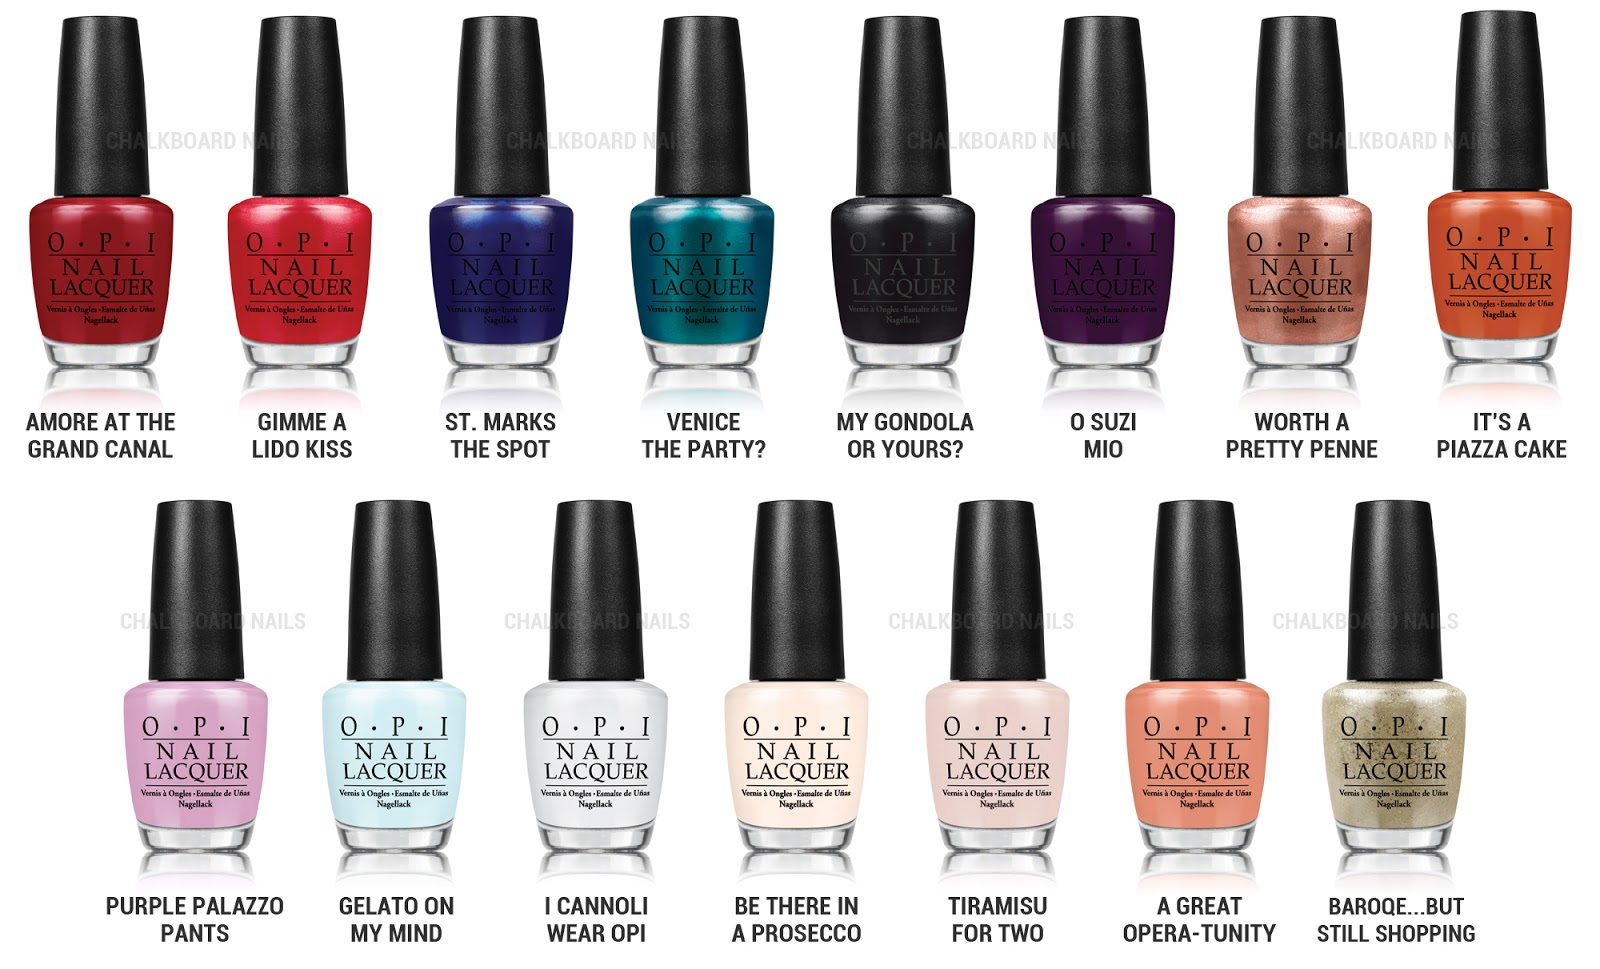 OPI Venice Collection via @chalkboardnails